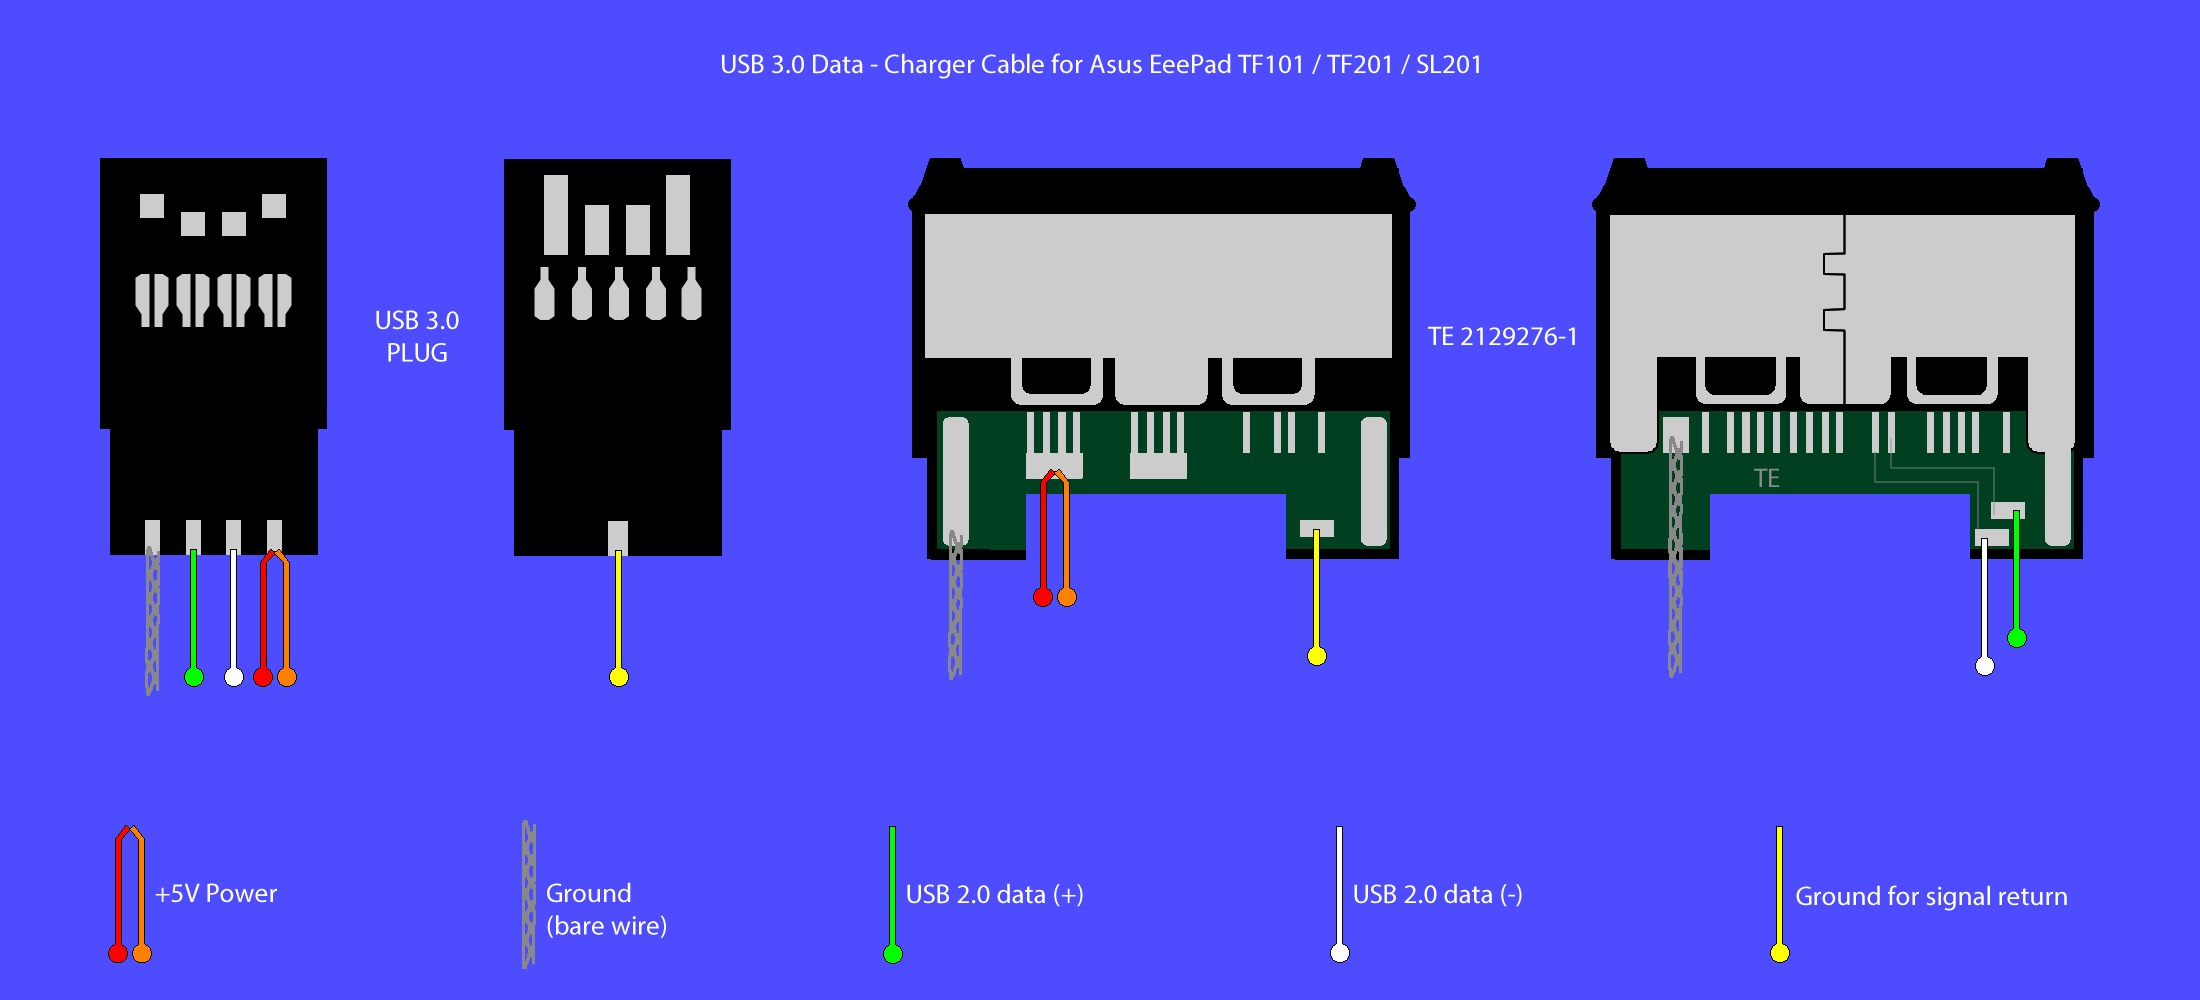 Usb Phone Charger Wire Diagram | Manual E-Books - Usb Wiring Diagram For Charging